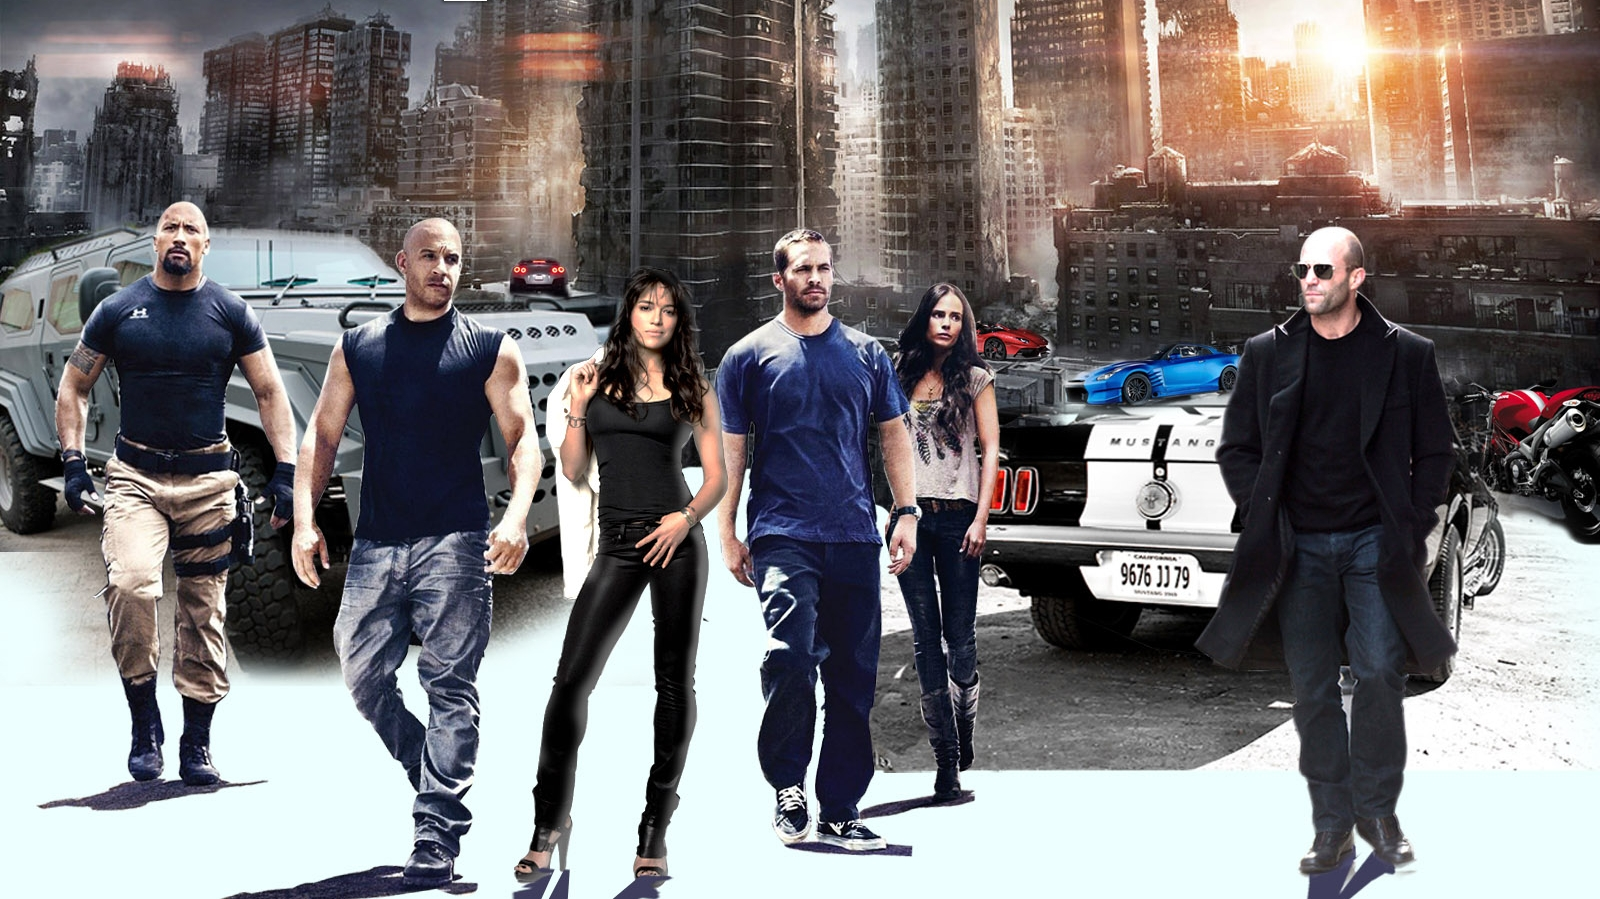 c526ce445de5 The seventh installment of the Fast   Furious franchise opened Friday last  week amid a glut of fanfare and wannabe-racer